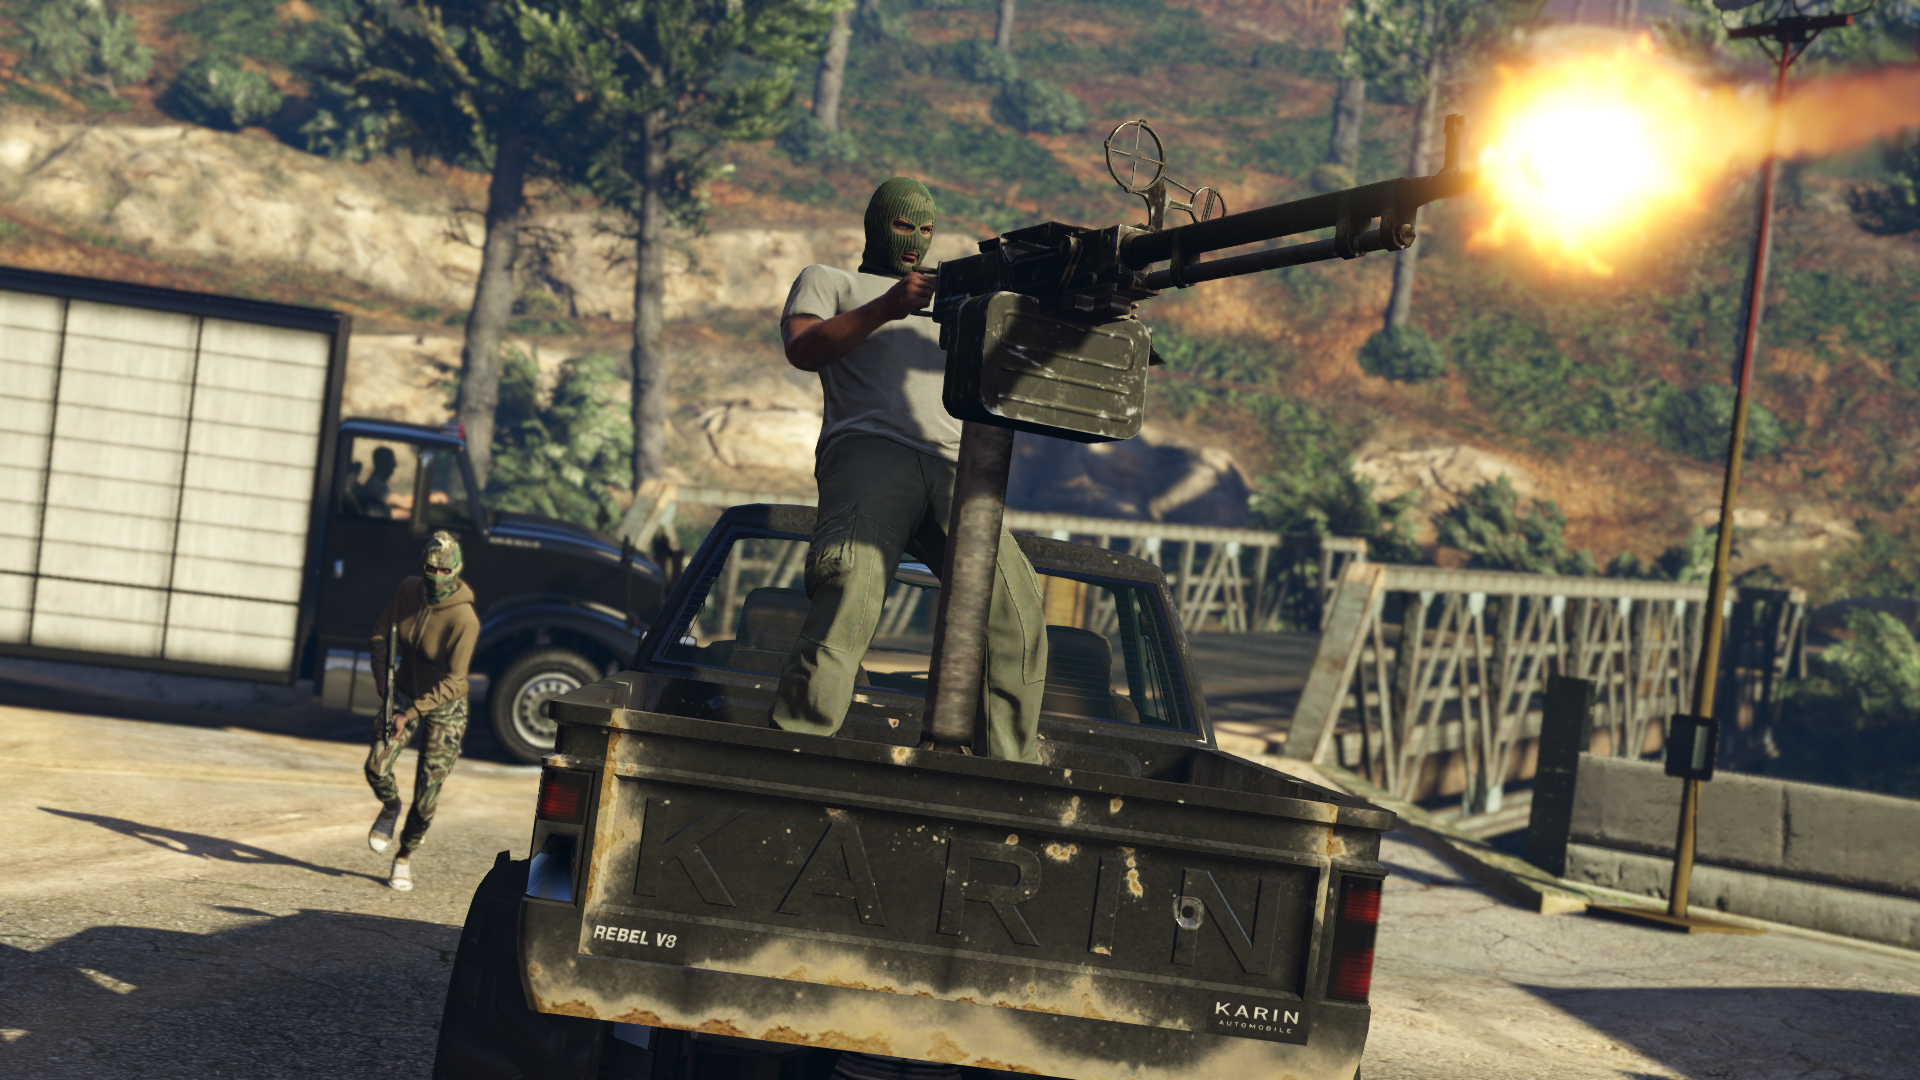 GTA 5 Xbox One/PS4 Graphics Took a Hit After Latest Patch, But a Fix Is Coming